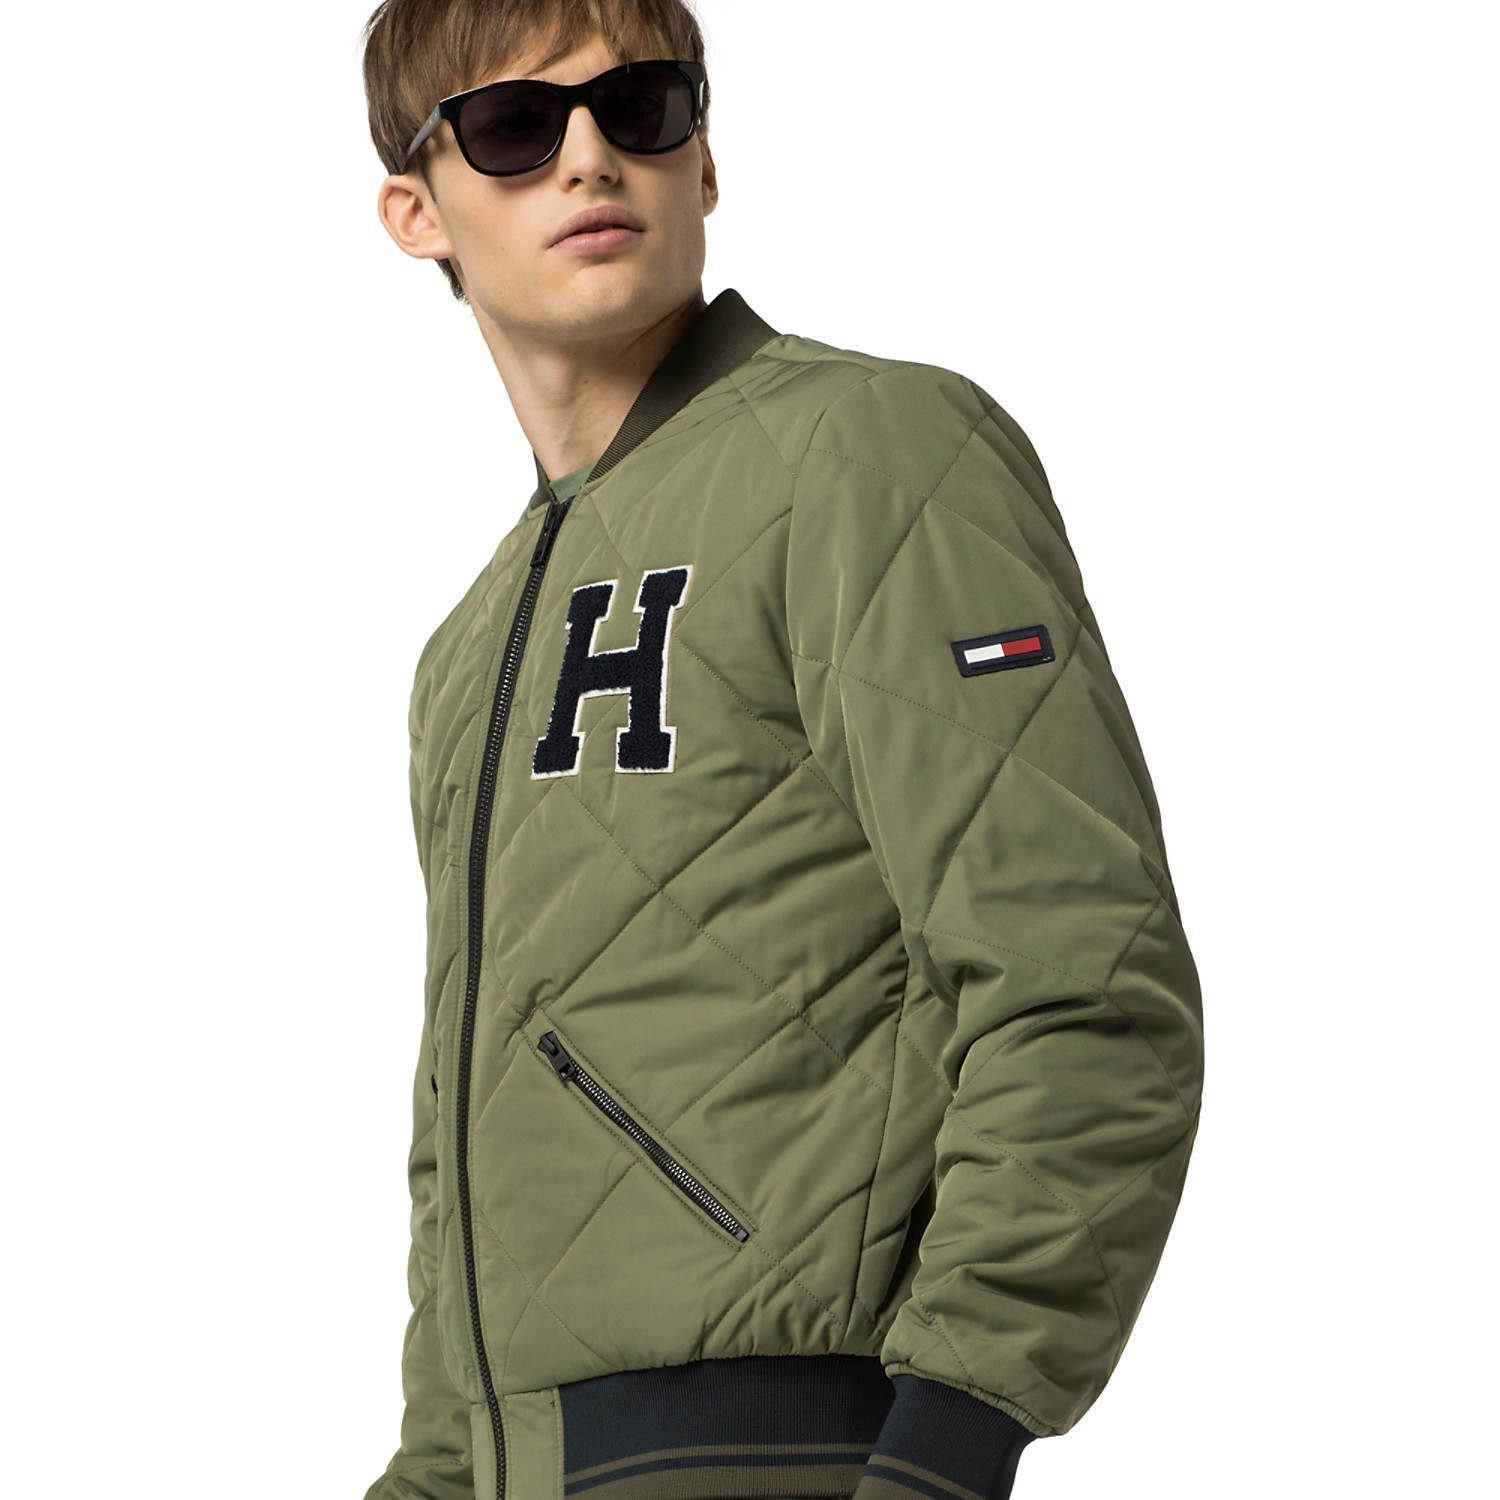 【Tommy Hilfiger 】VARSITY QUILTED JACKET 袖 ロゴ